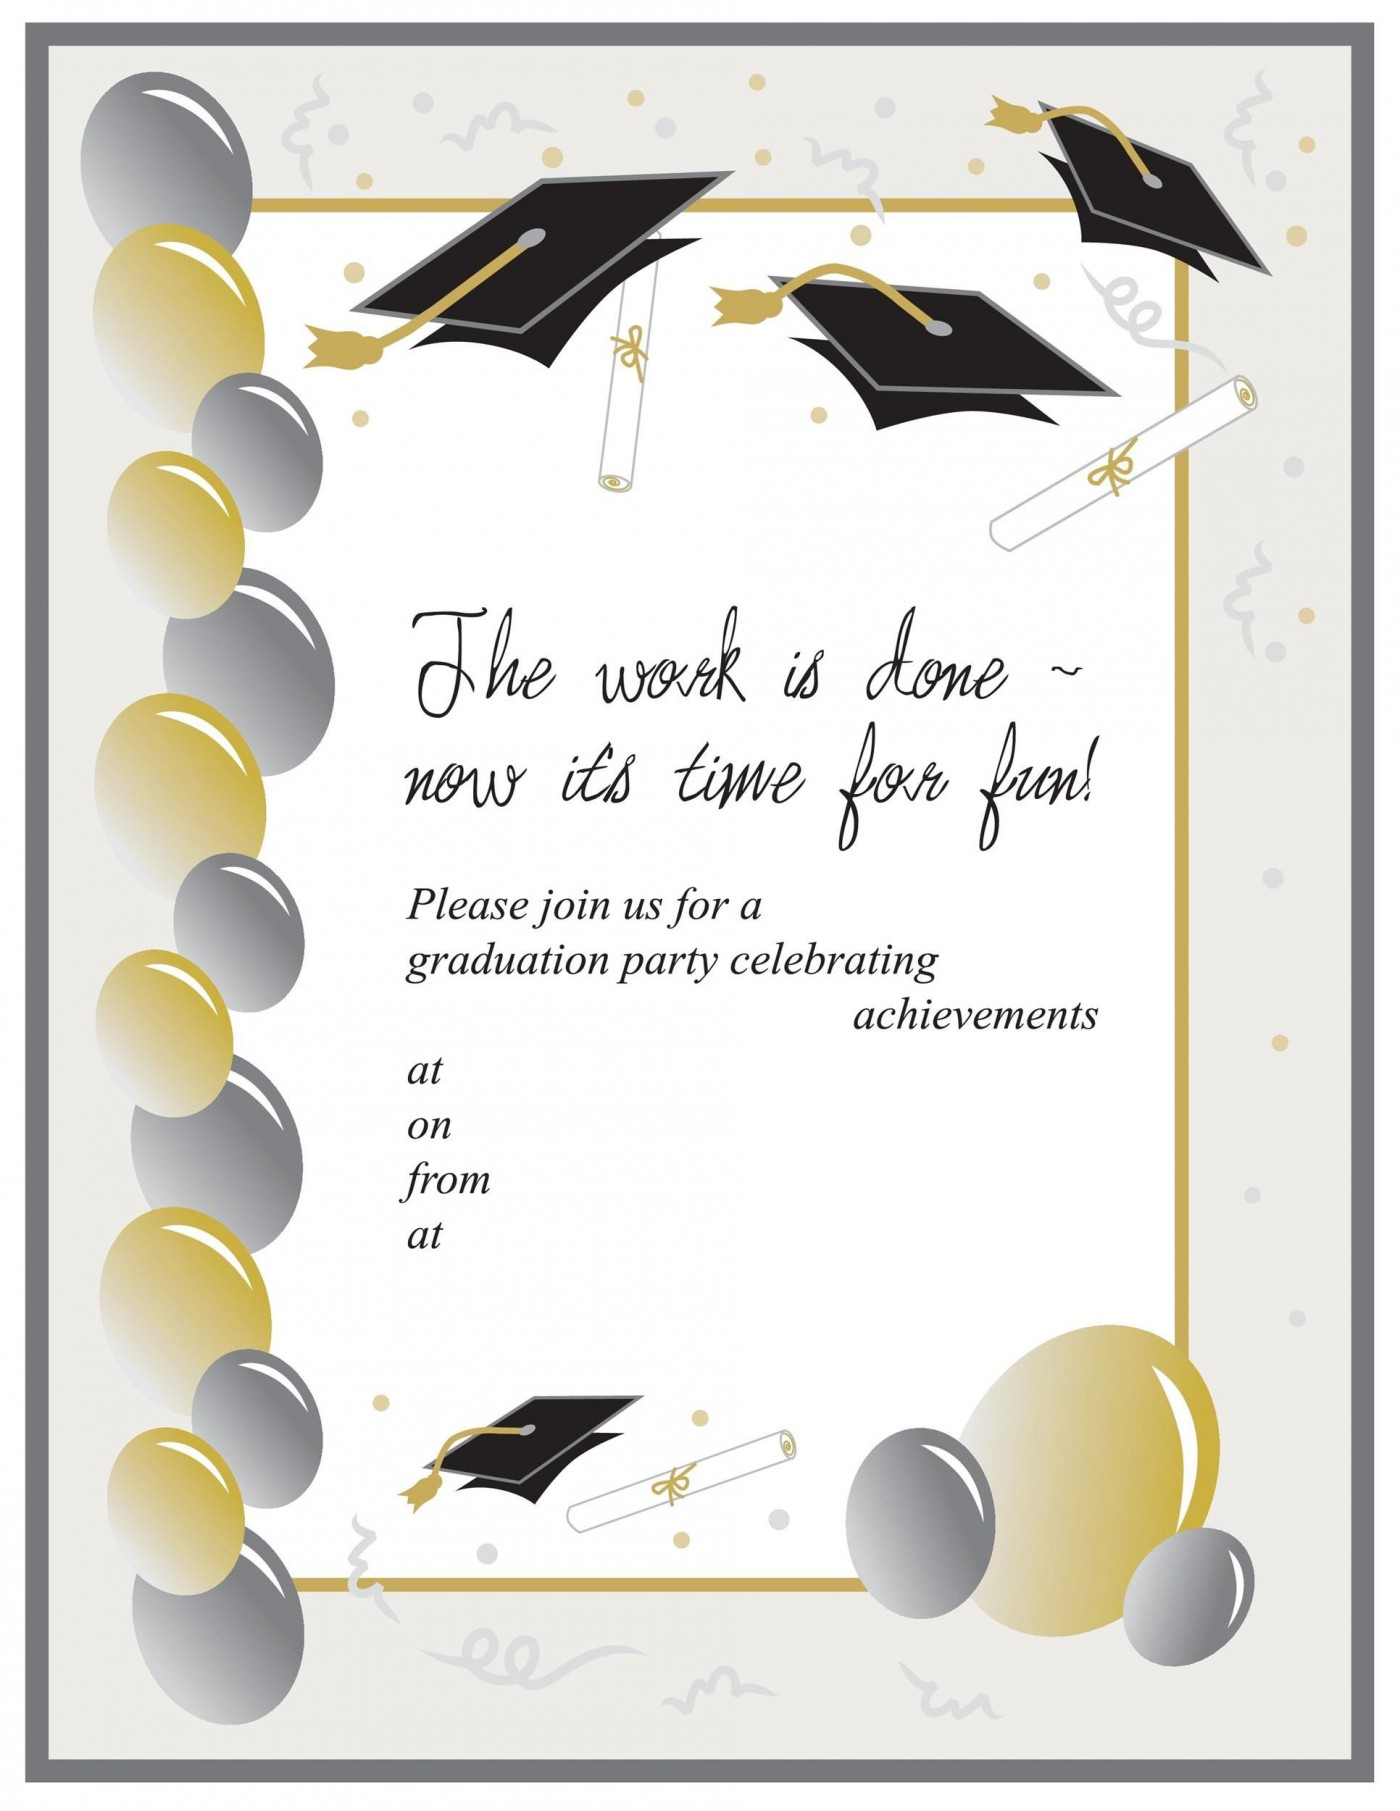 008 Formidable Free Printable Graduation Invitation Template Example  Party For Word1400